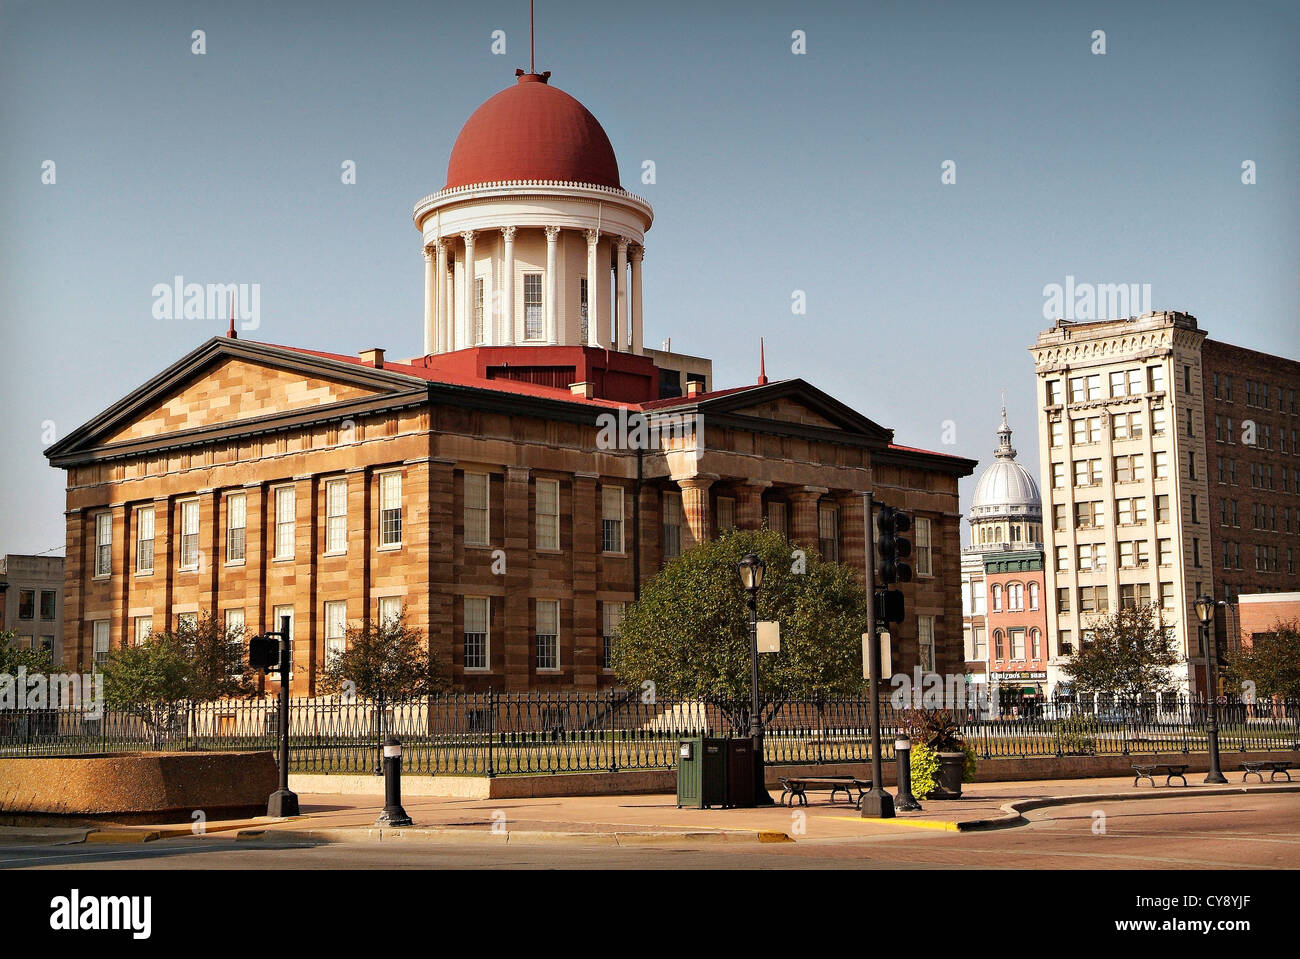 Springfield Illinois USA State Capital and home of the Lincoln Library and Museum.  The Old State Capitol Building. - Stock Image